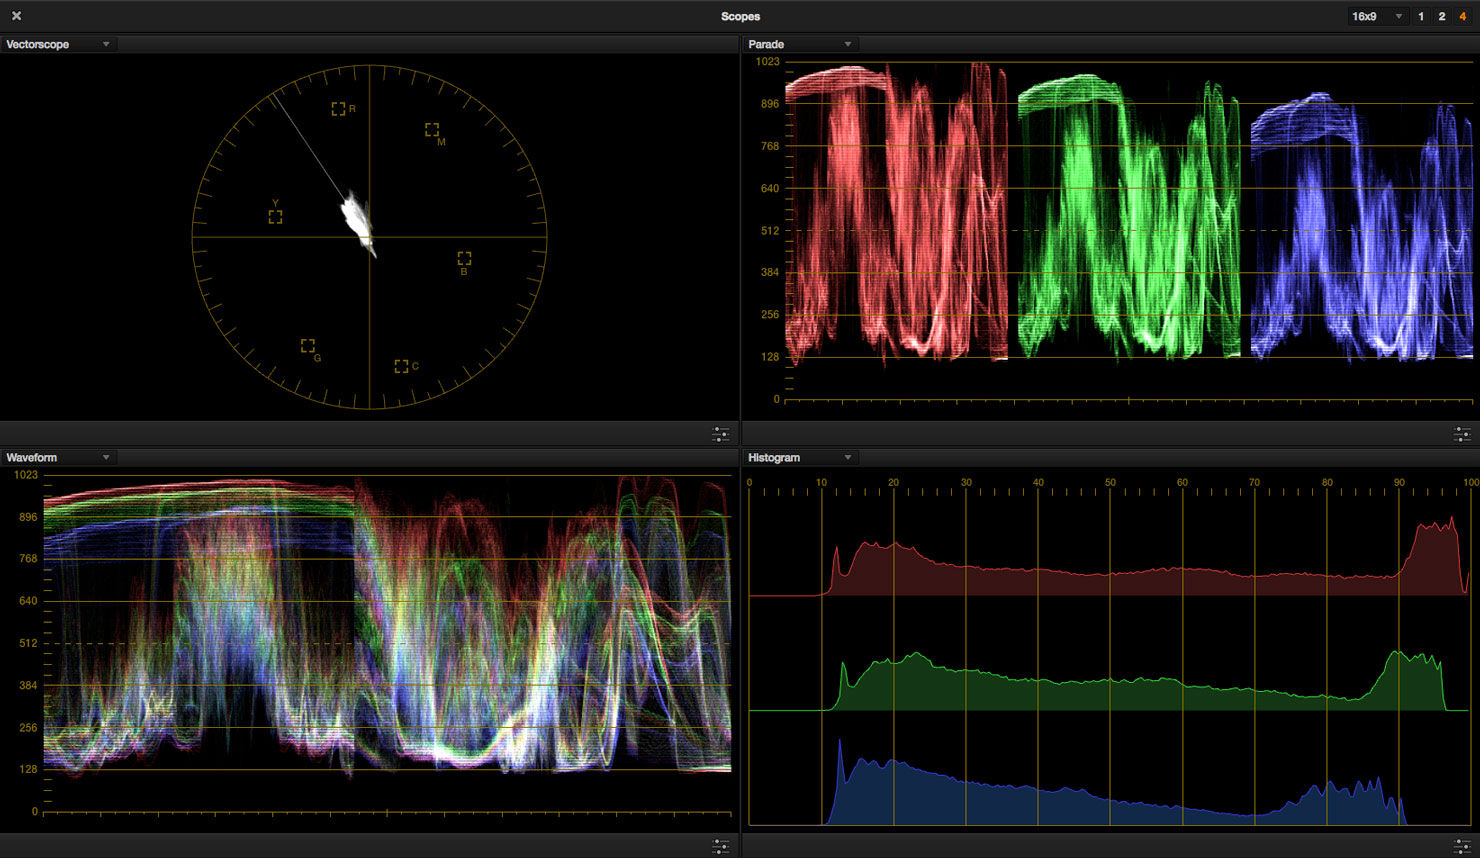 Scopes in DaVinci Resolve.